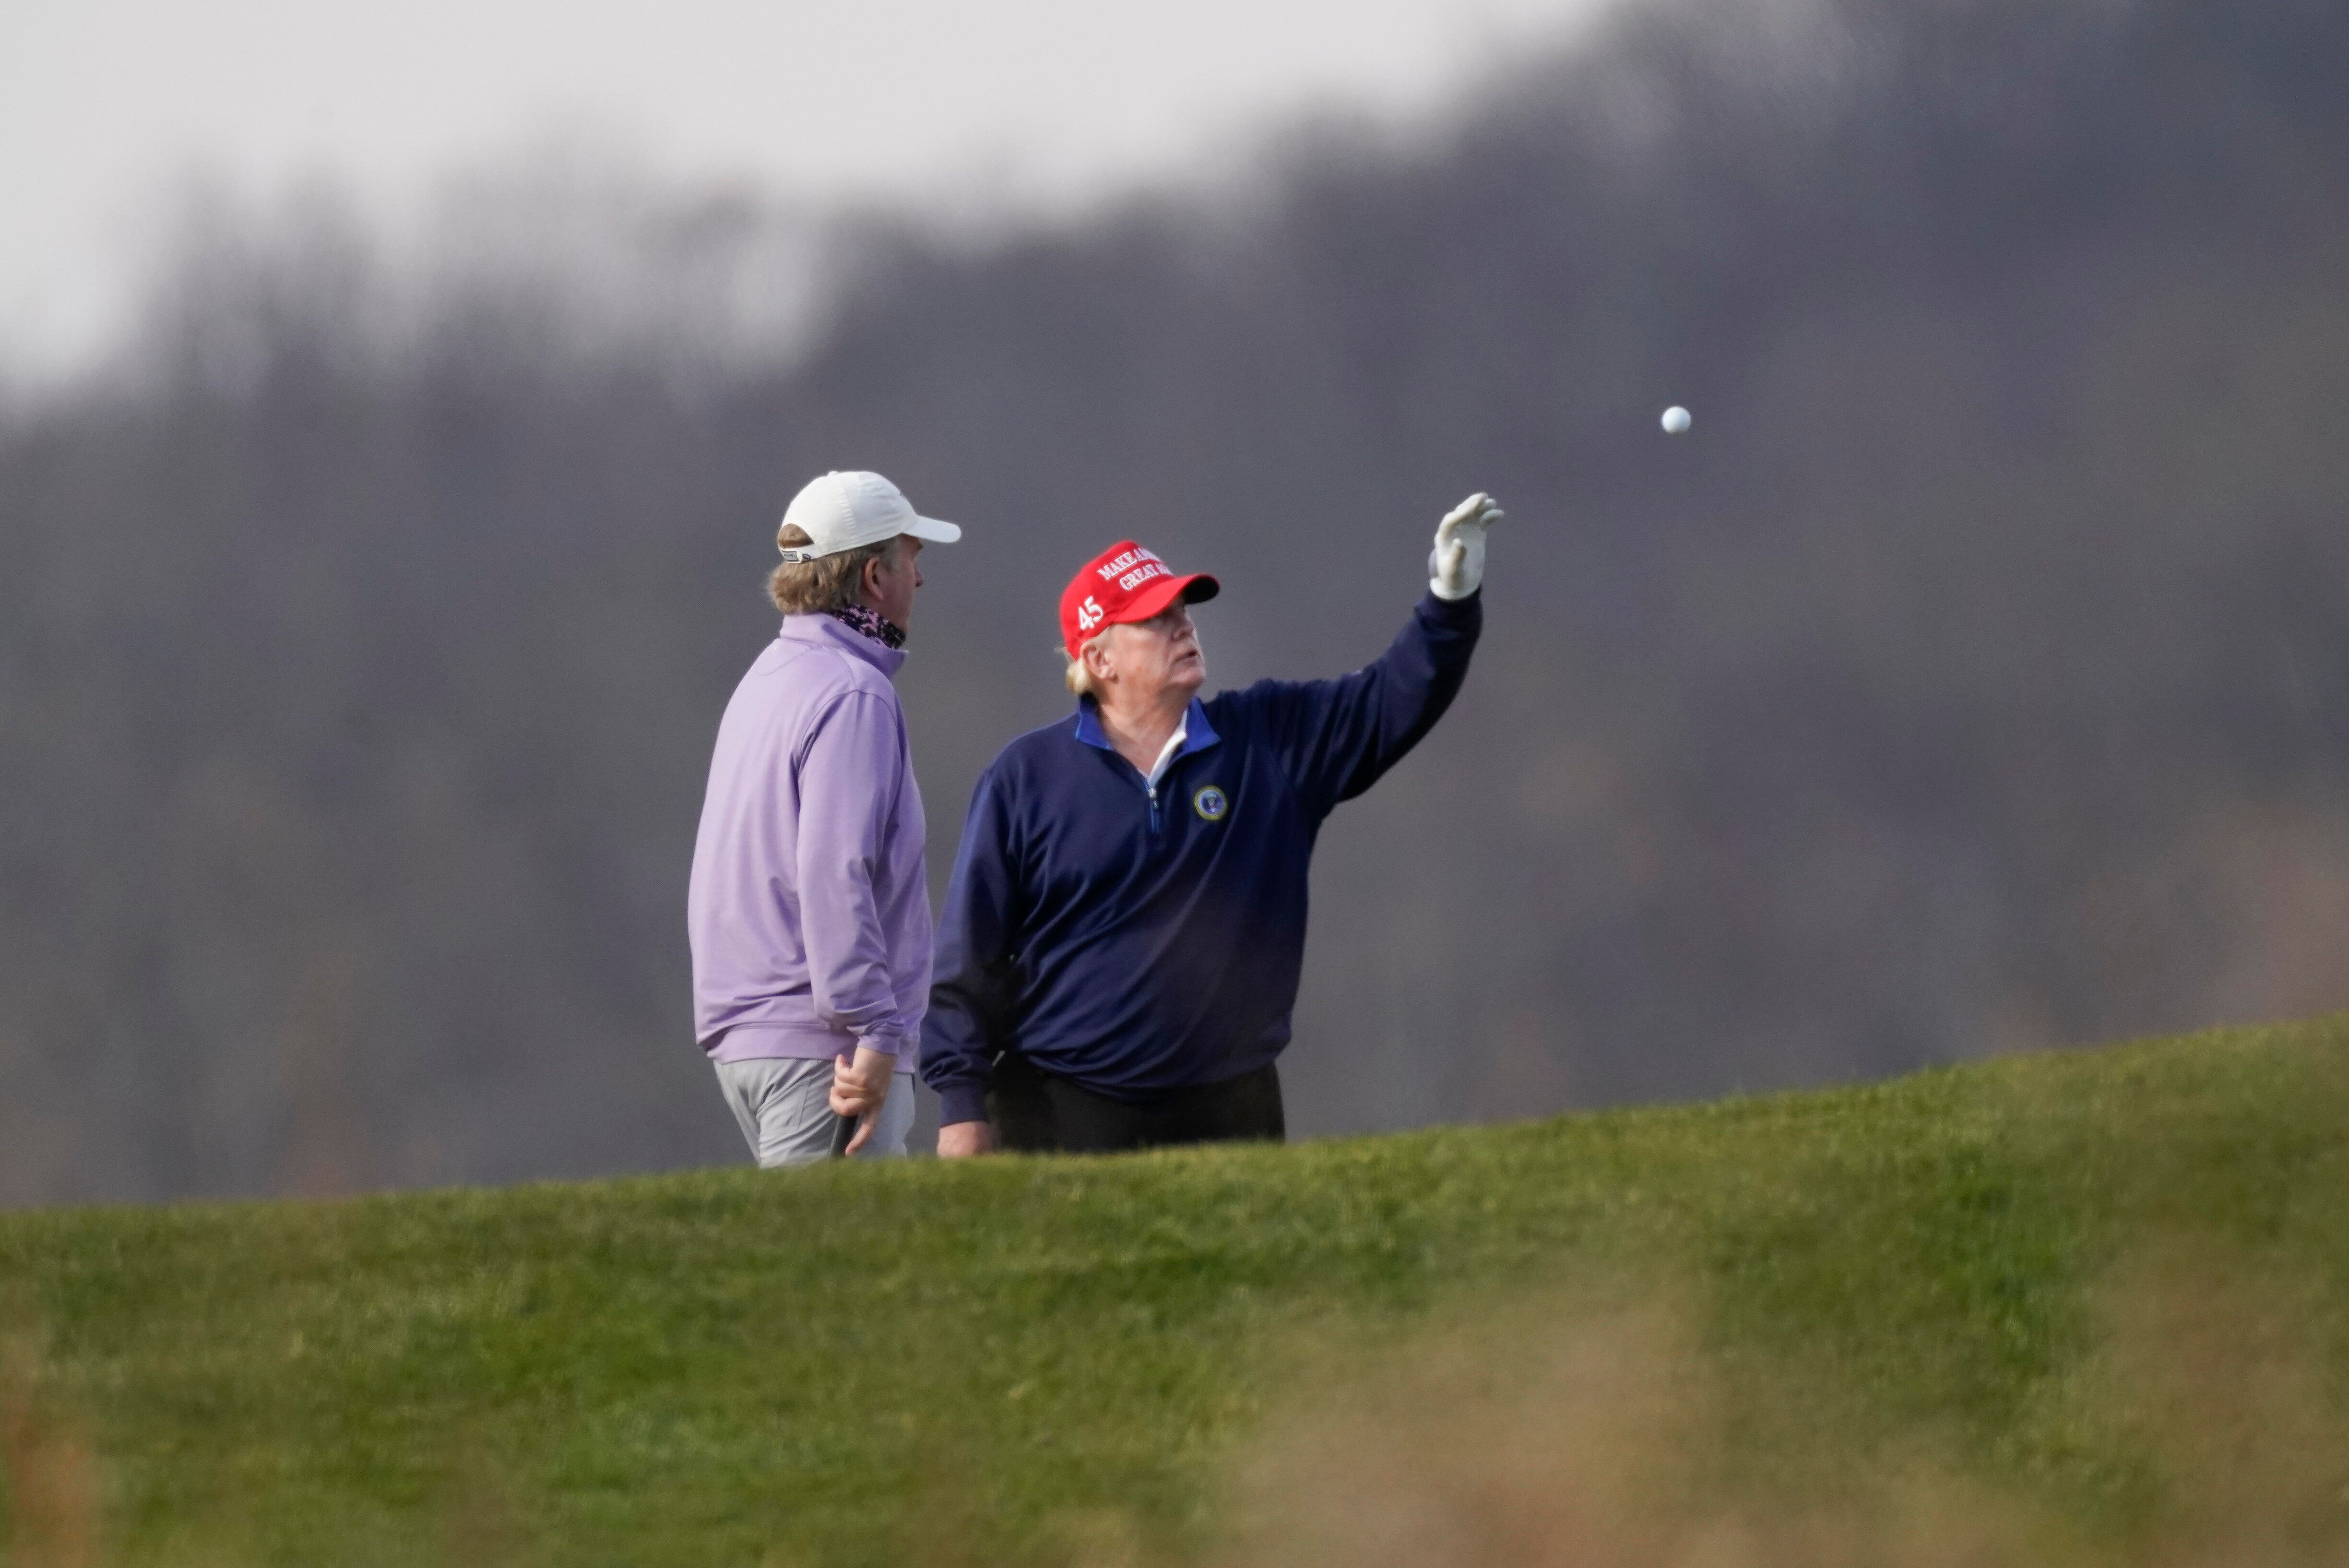 President Donald Trump is tossed a golf ball as he golfs at Trump National Golf Club in Sterling, Va., Sunday, Dec. 13, 2020.